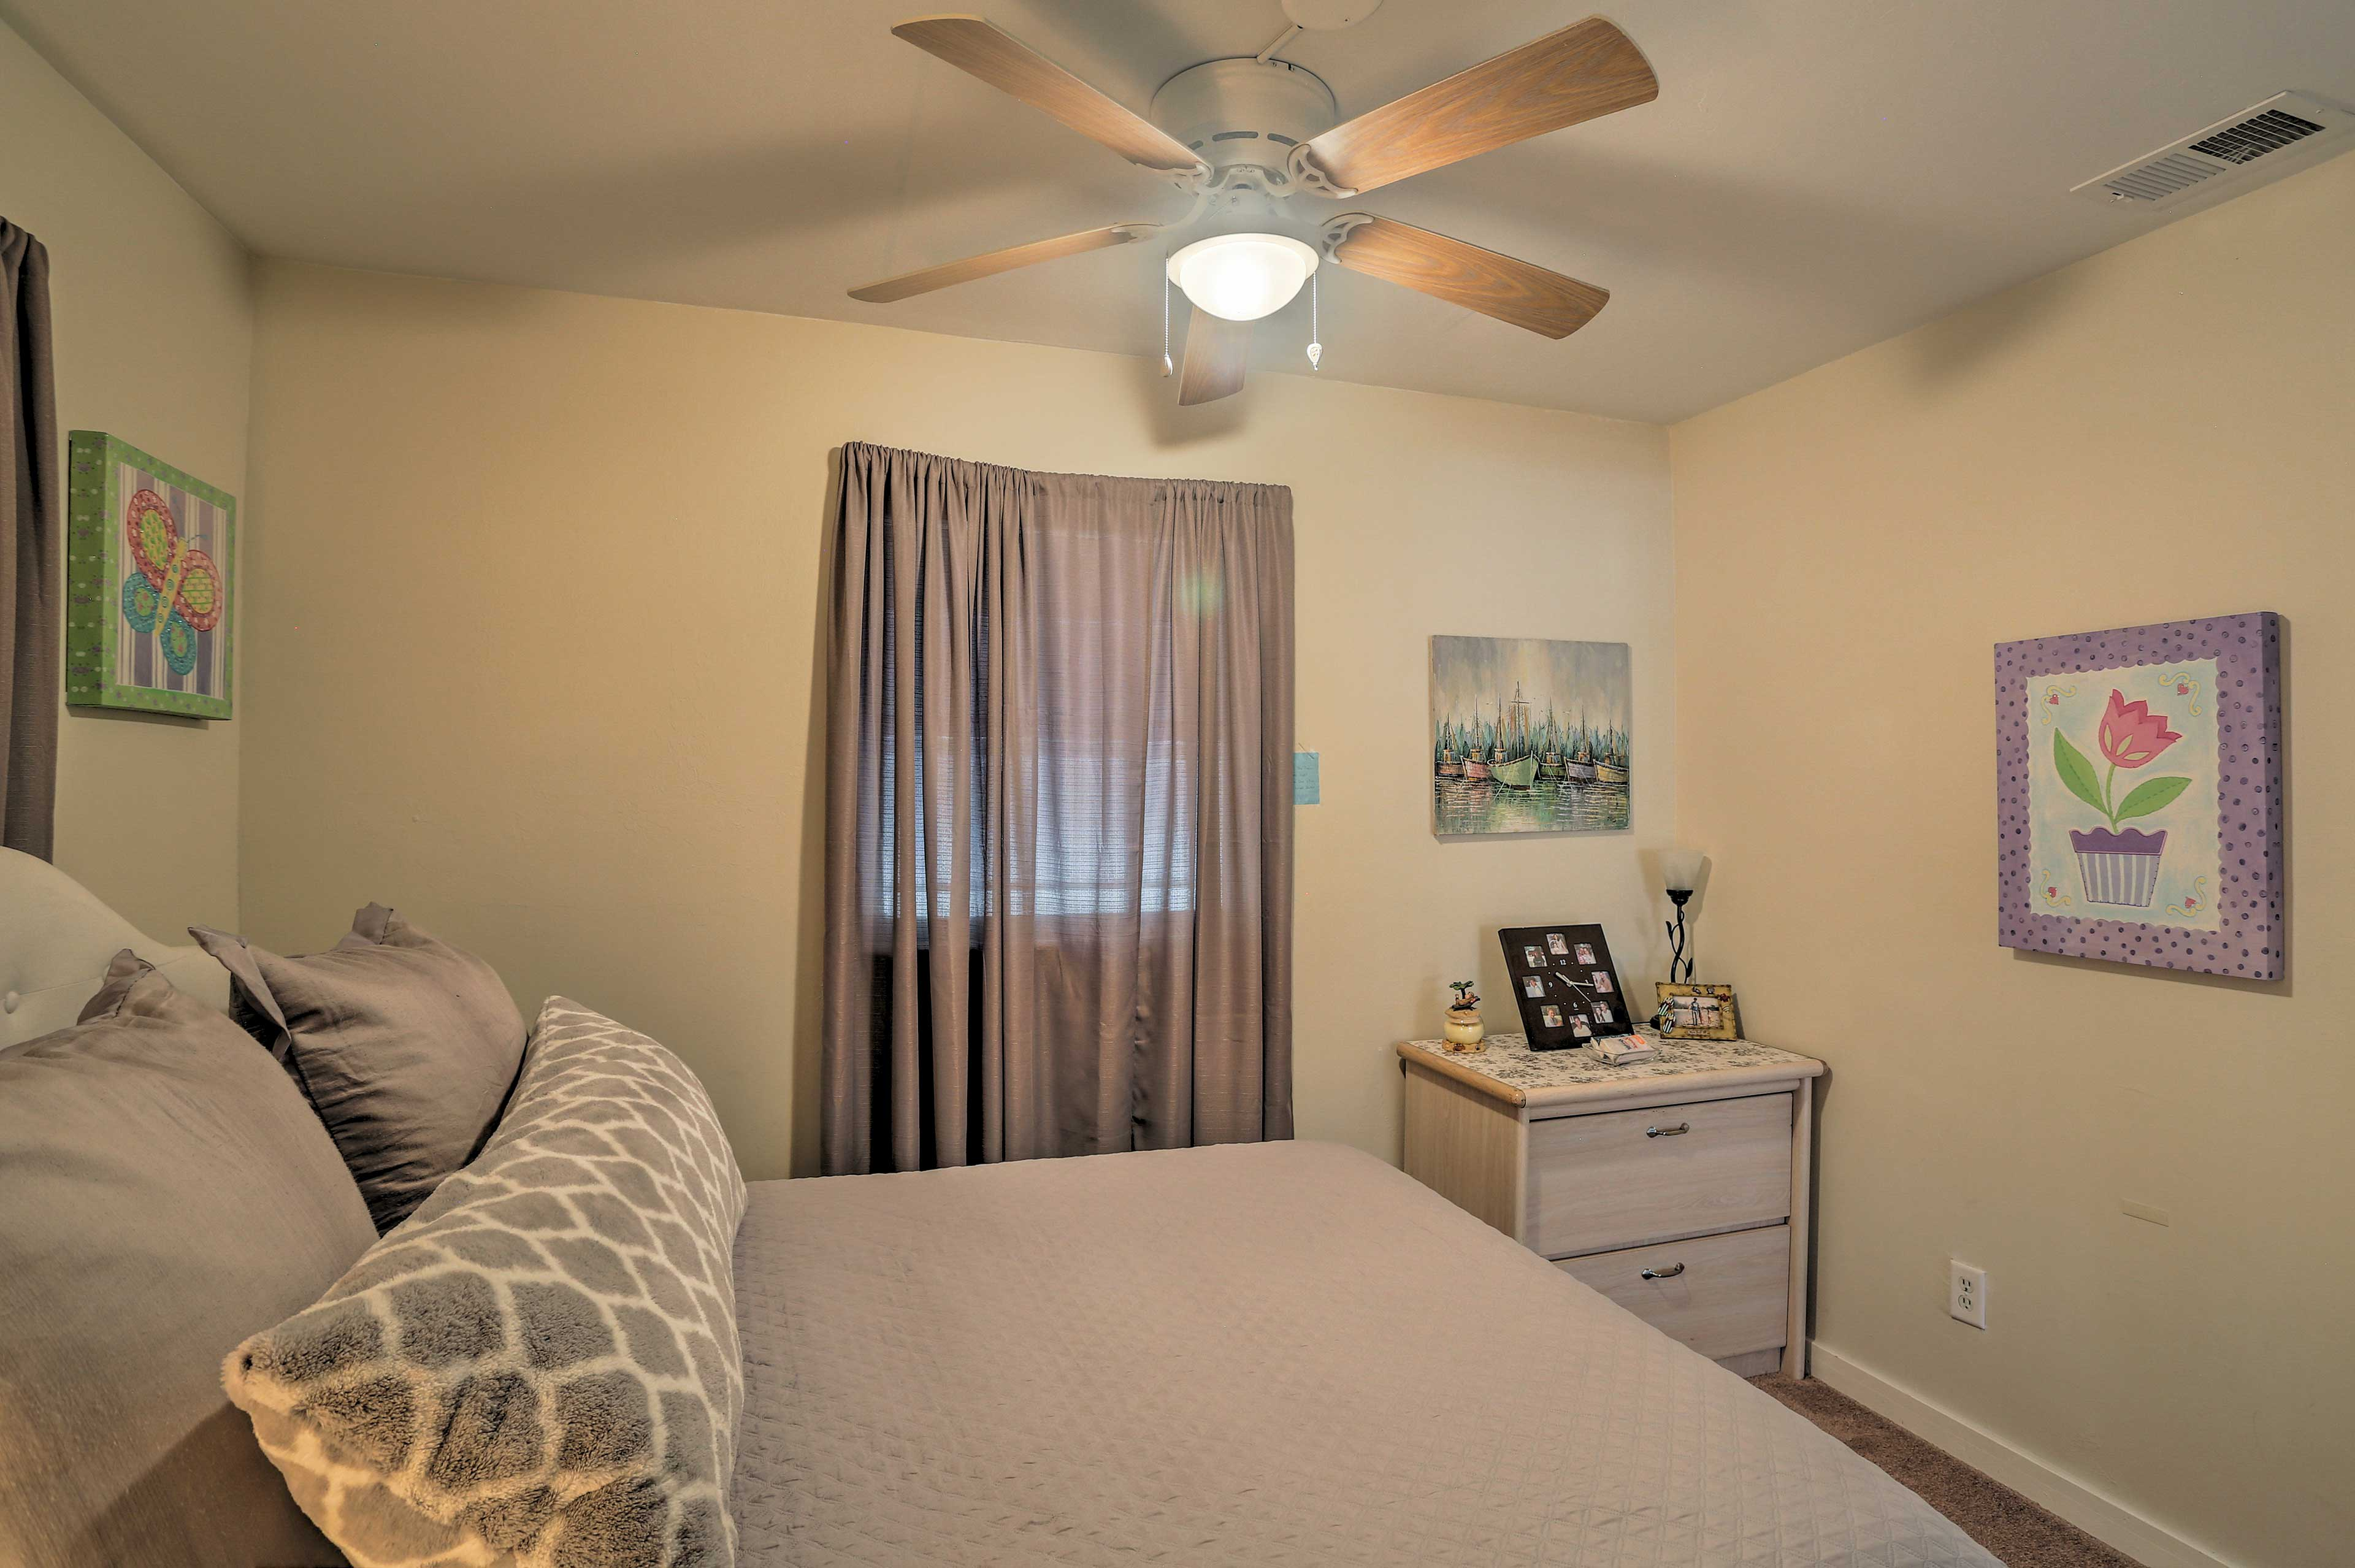 Cool off with the ceiling fan.